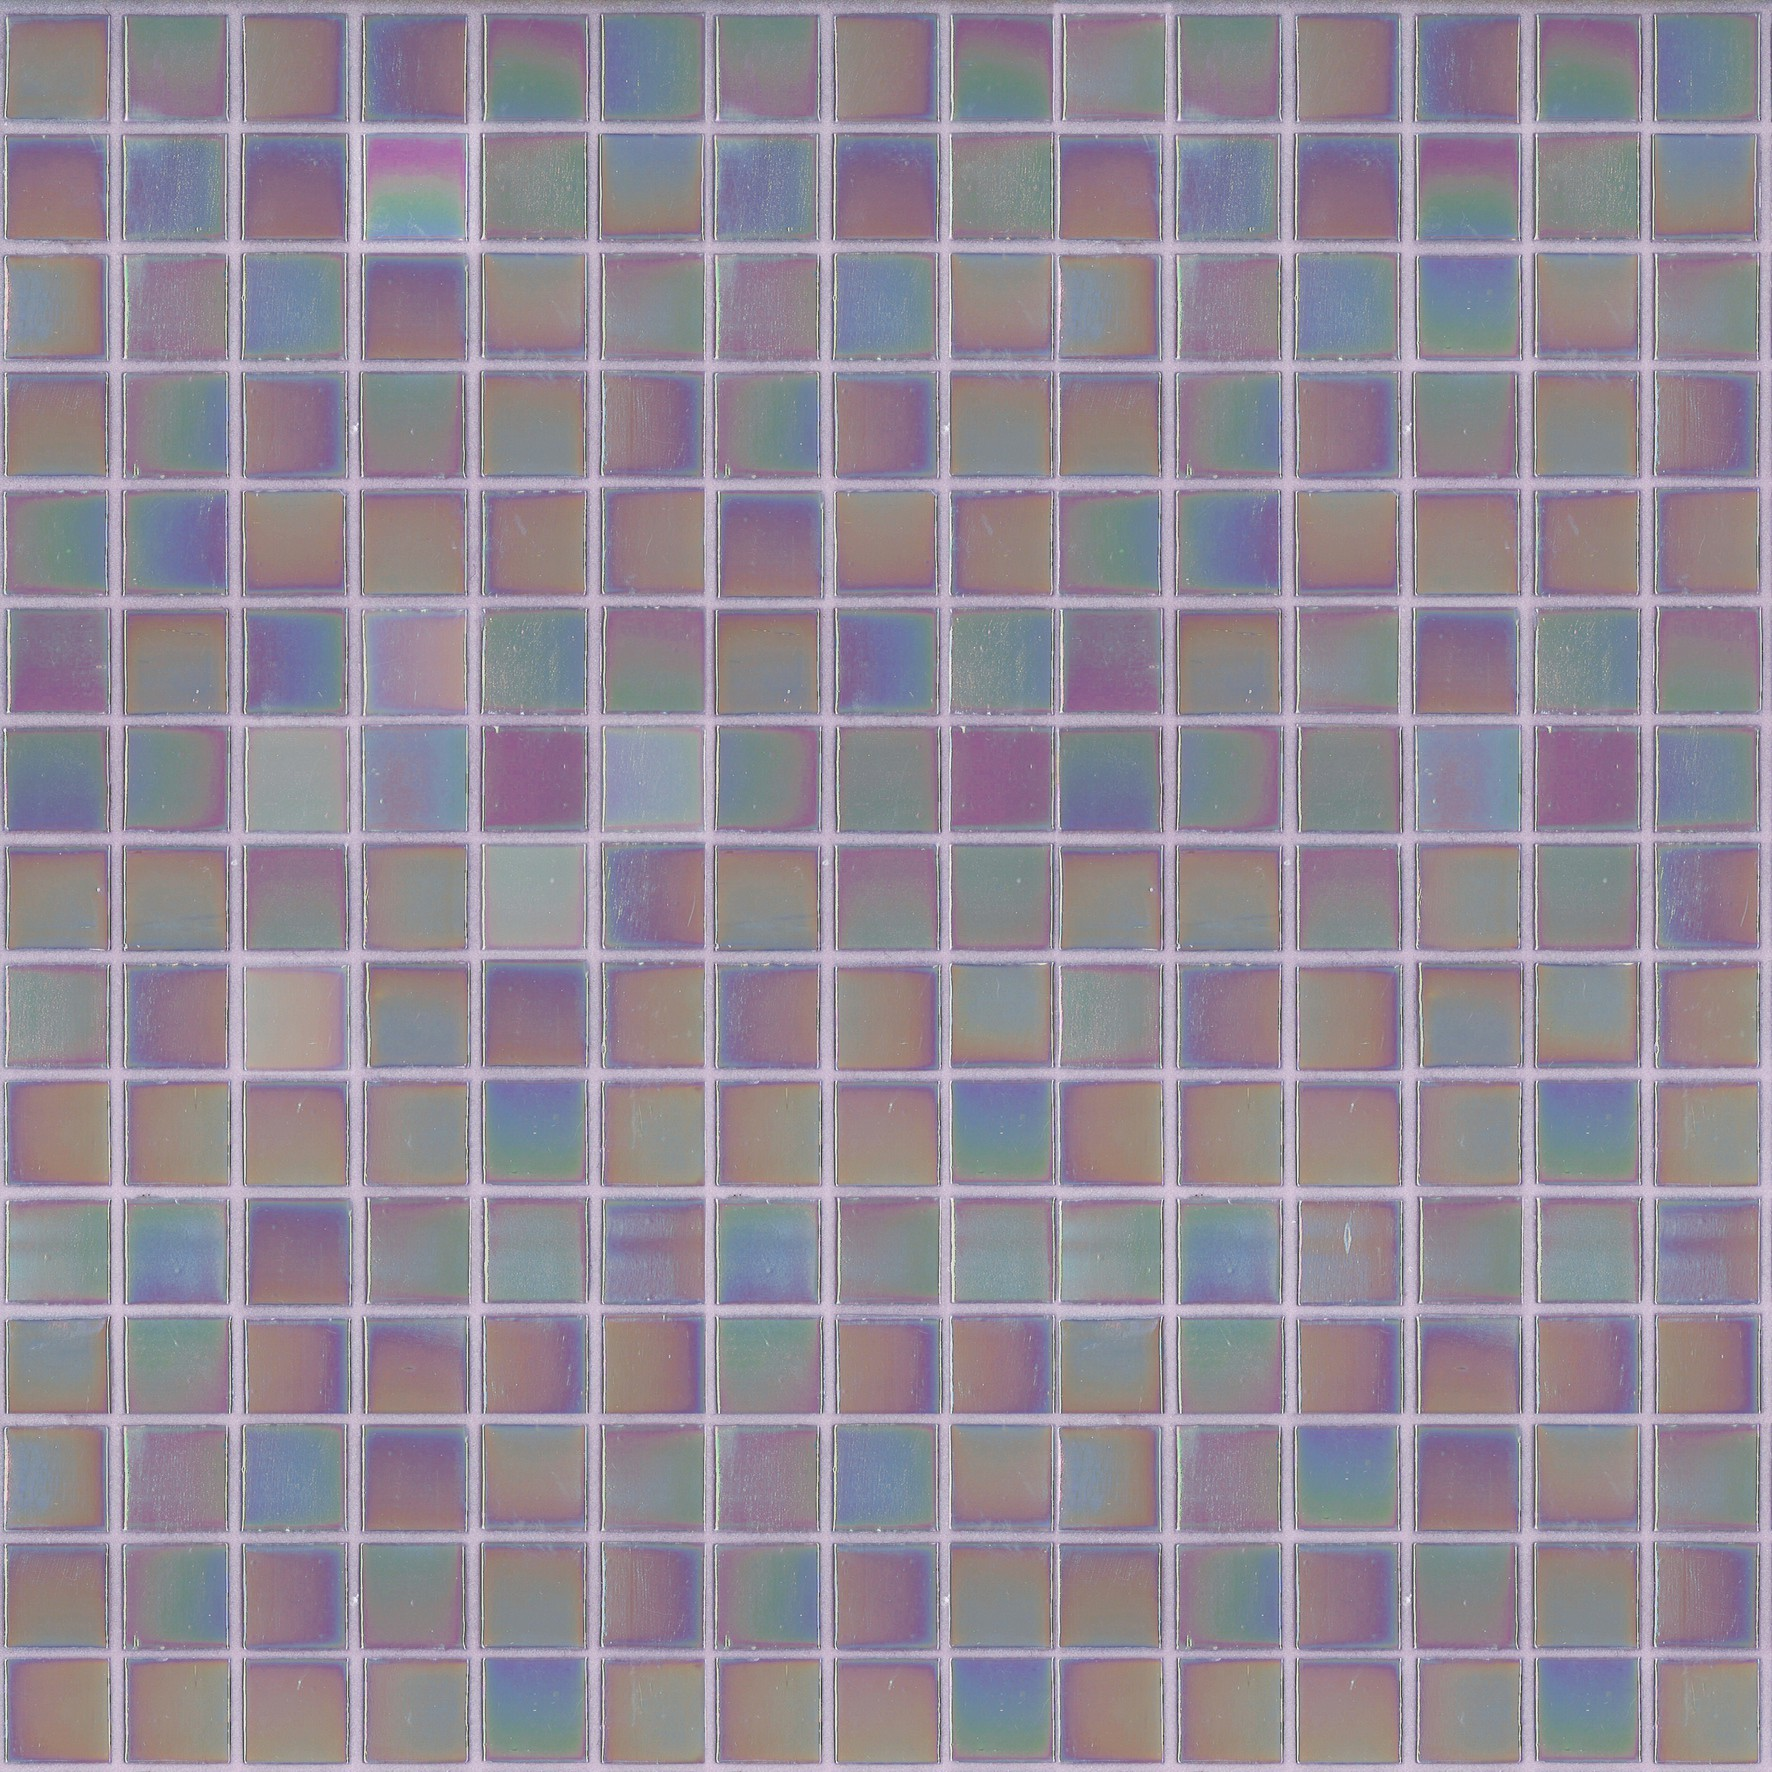 "Bisazza Gloss GL 11 Glass Mosaic Tile 20mm - 3/4"", 1 sheet"